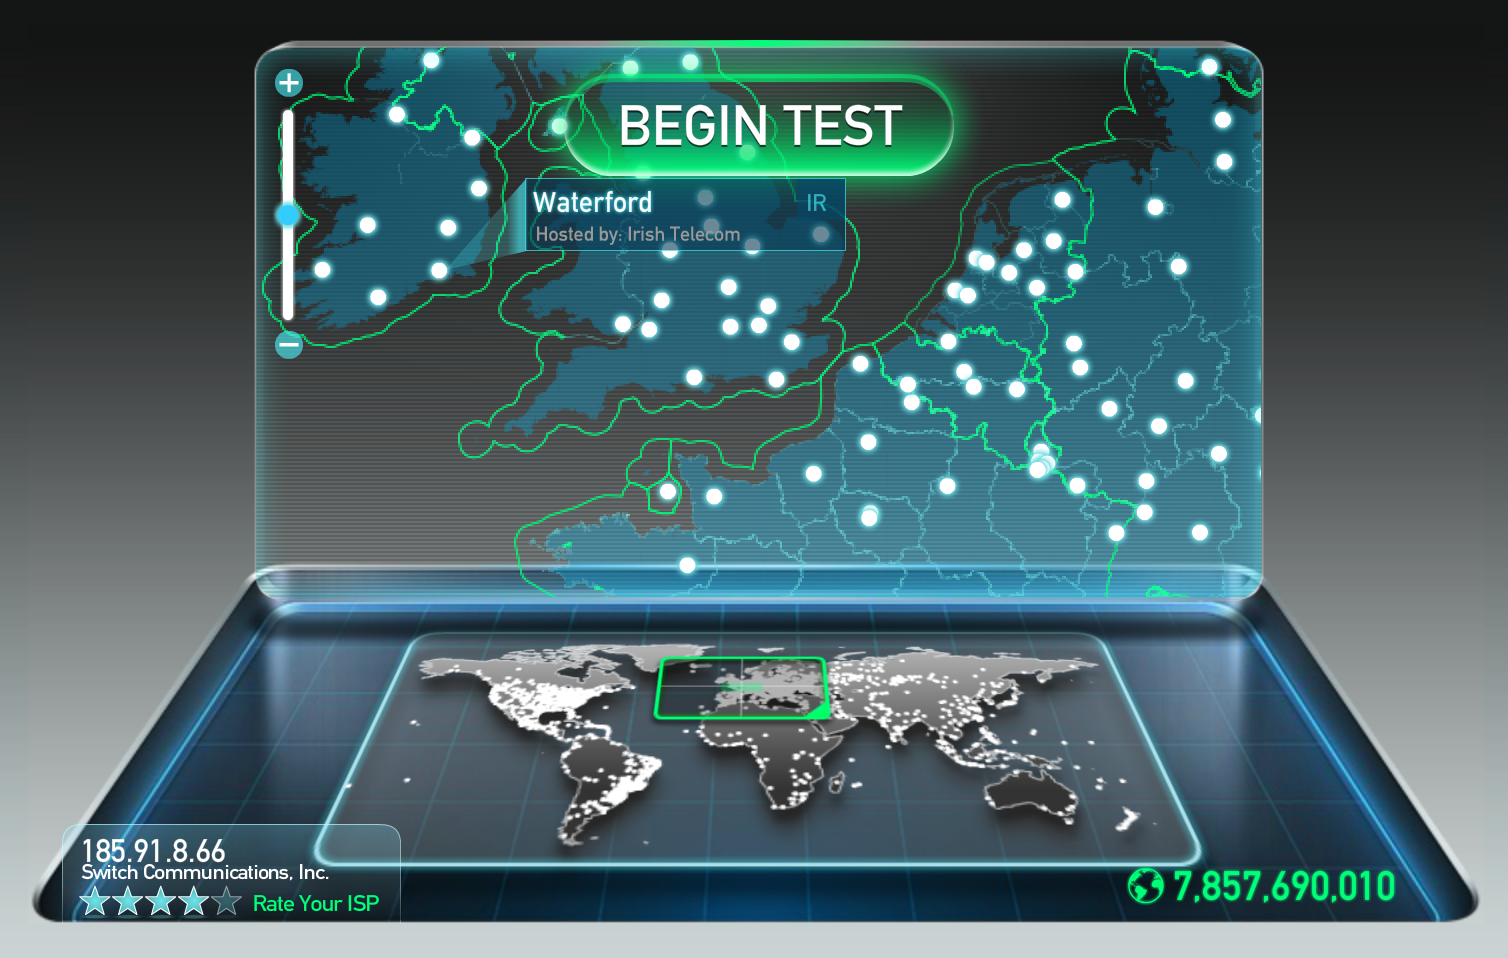 Speedtest.net shows the closest server being in Waterford, Ireland, not San Jose, California, USA